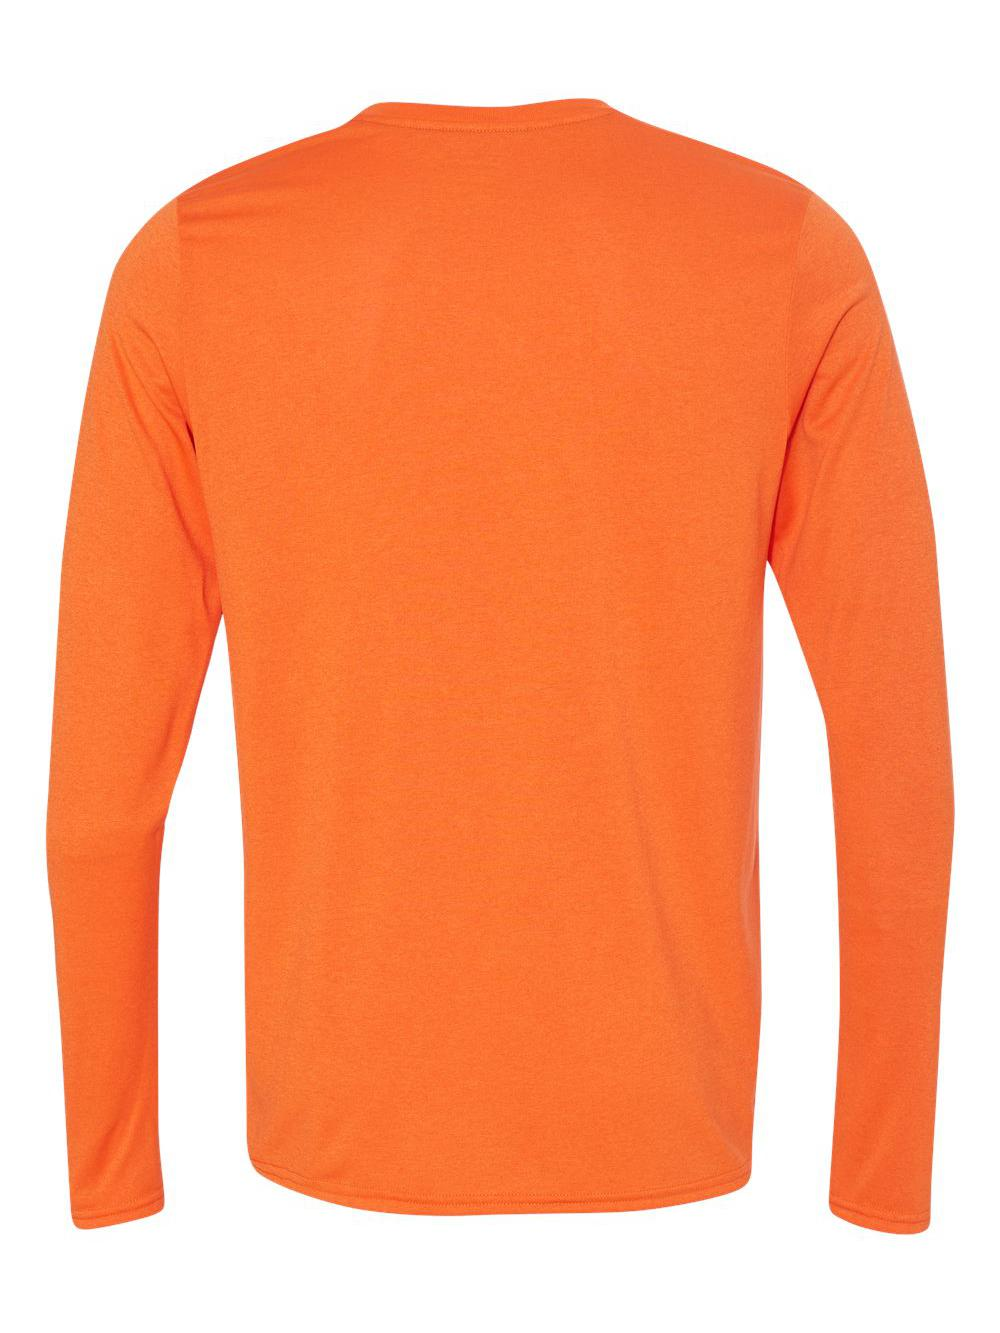 Gildan-Tech-Performance-Long-Sleeve-T-Shirt-47400 thumbnail 16